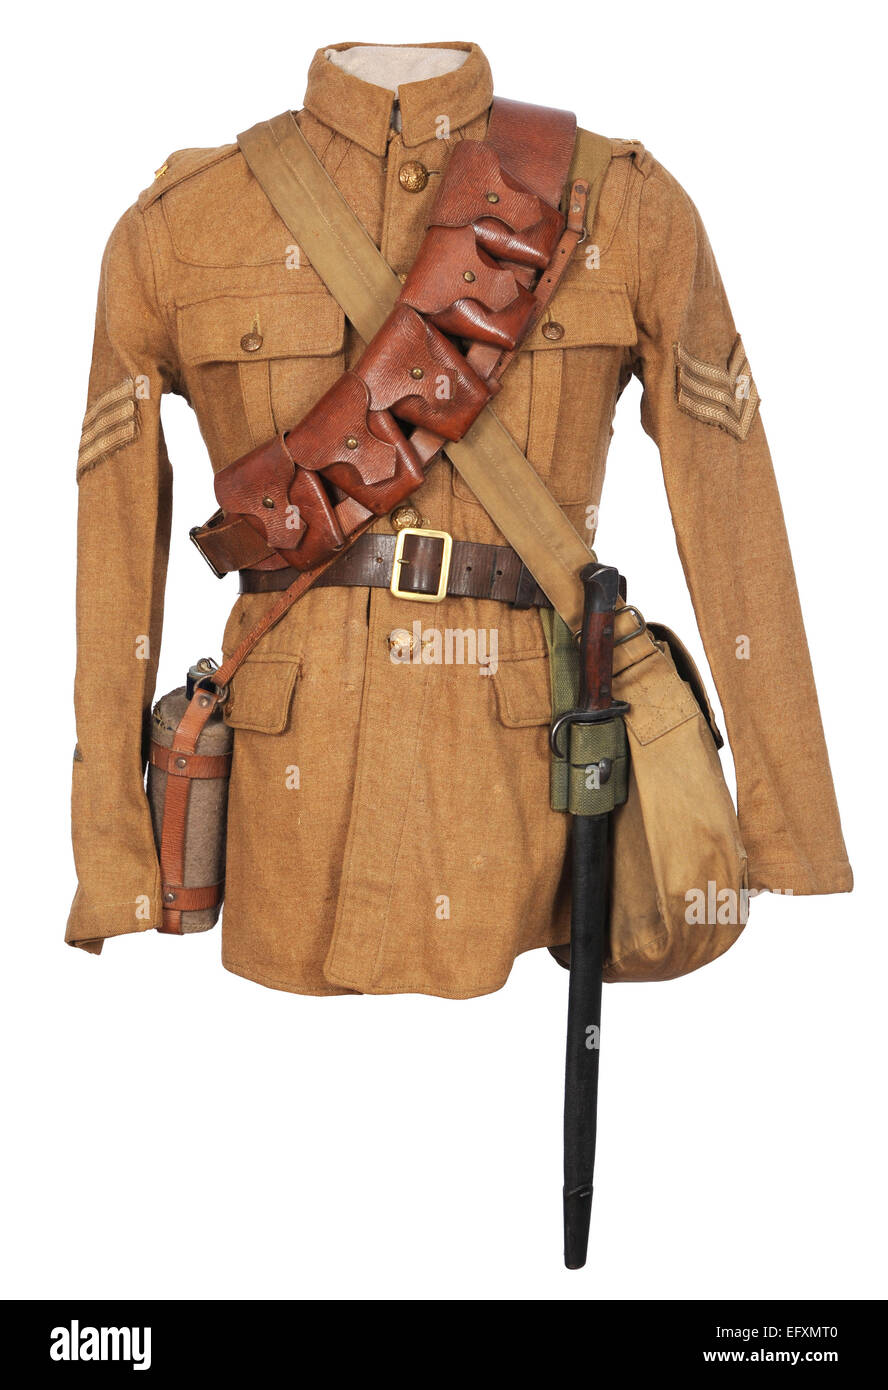 Tunic and equipment as used by British cavalry soldiers during the early years of the Great War. WW1. - Stock Image